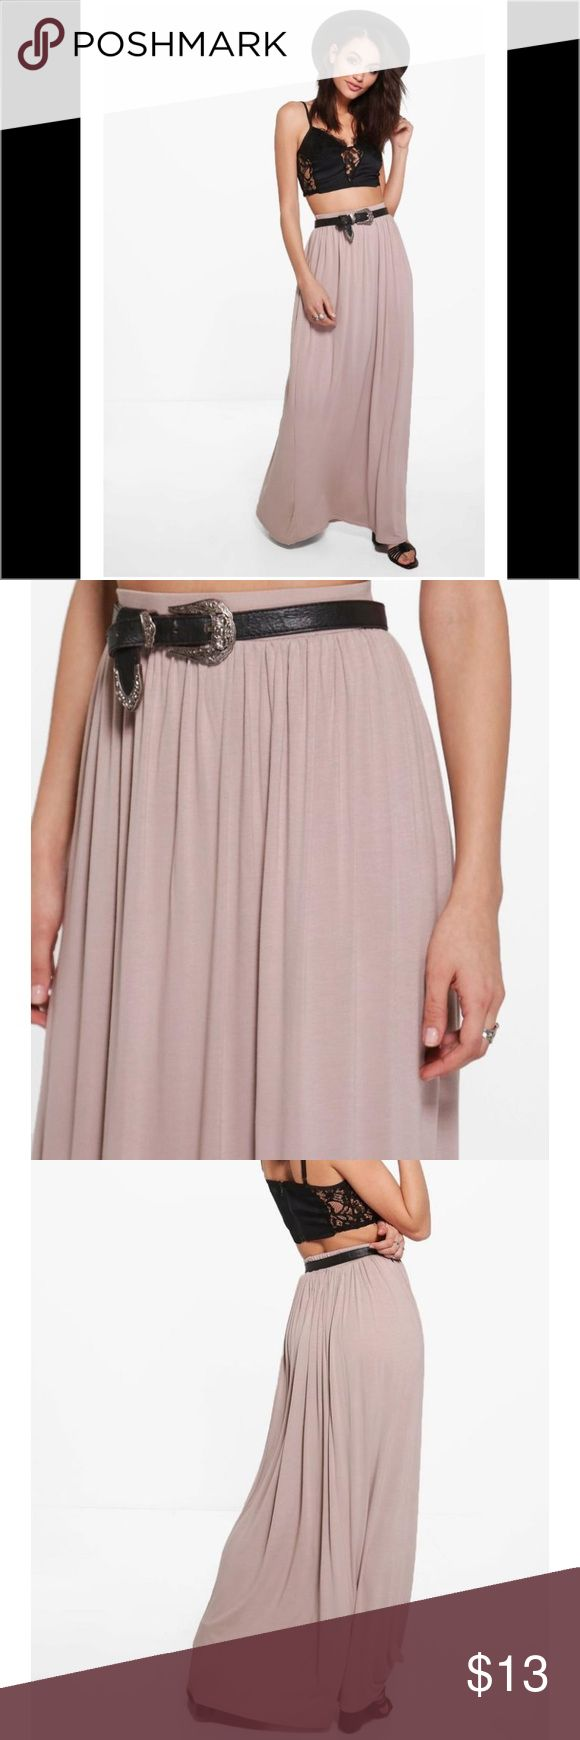 Jersey Maxi Skirt Brand new maxi skirt made of comfy lightweight jersey knit in dusty light pink. Size 6 fits like a small Skirts Maxi